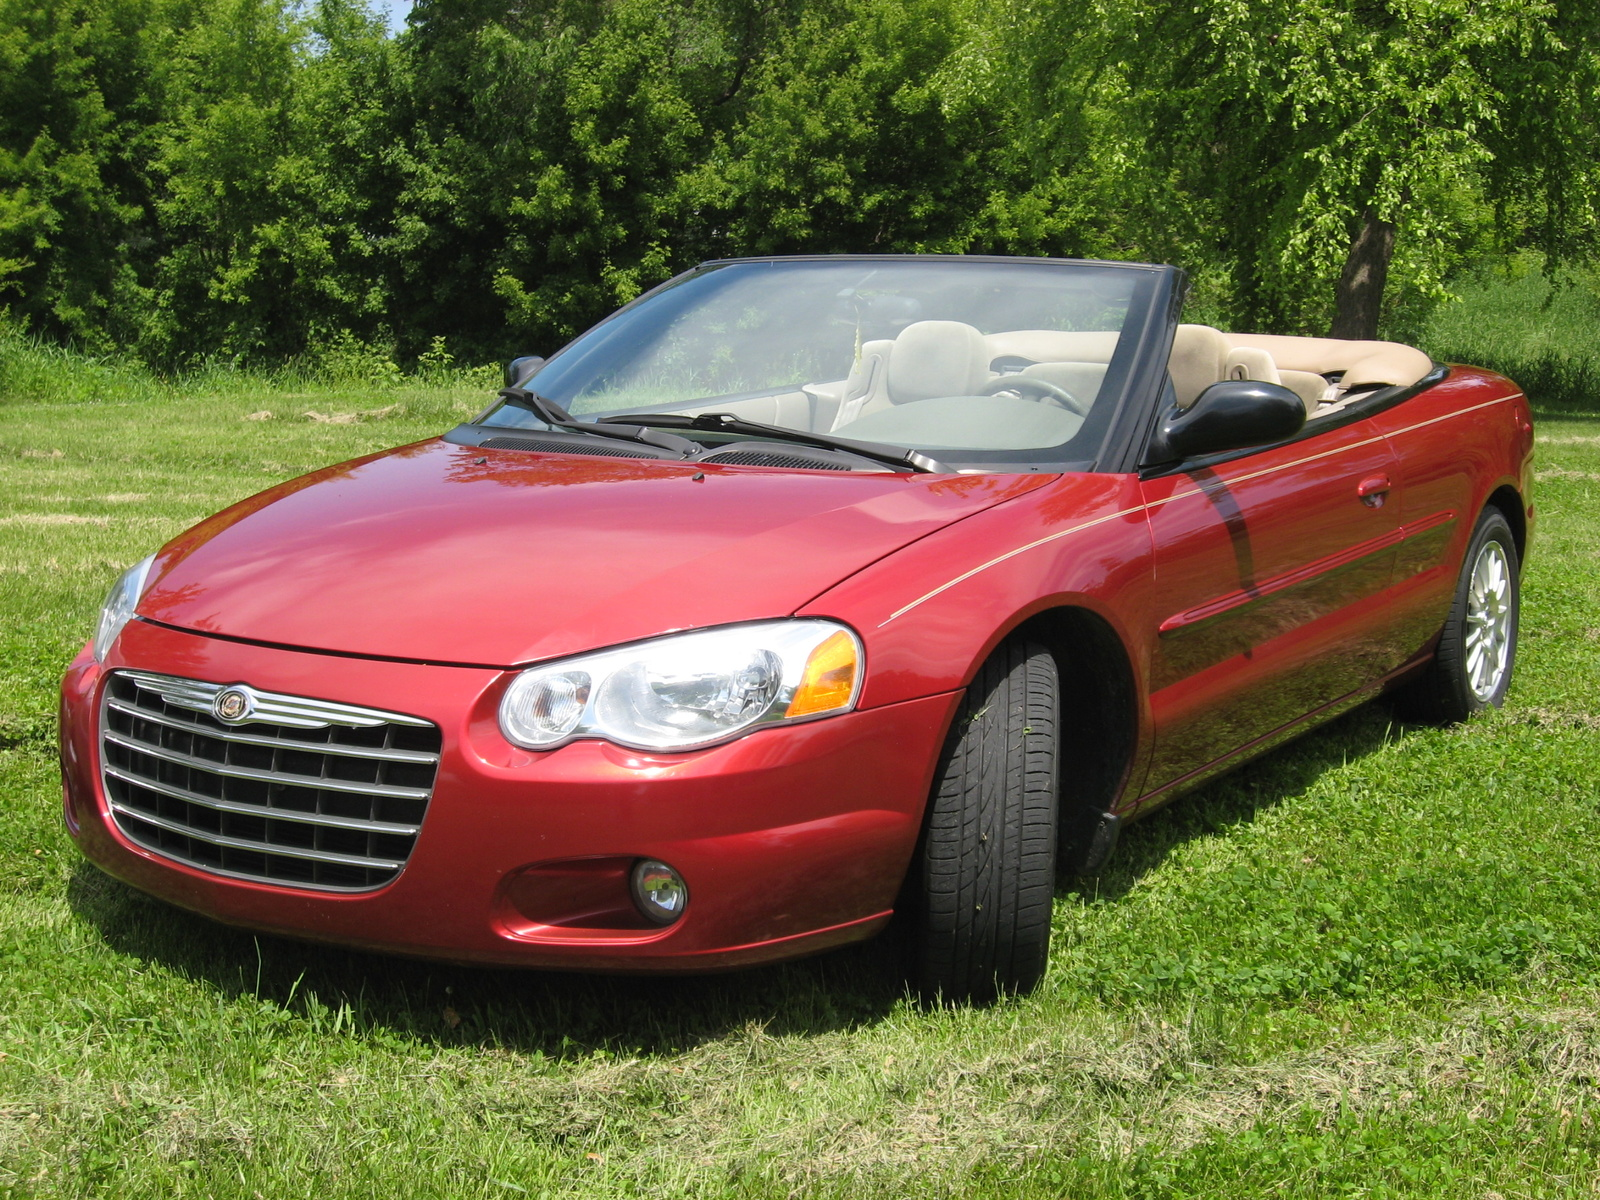 chrysler sebring convertible touring #3